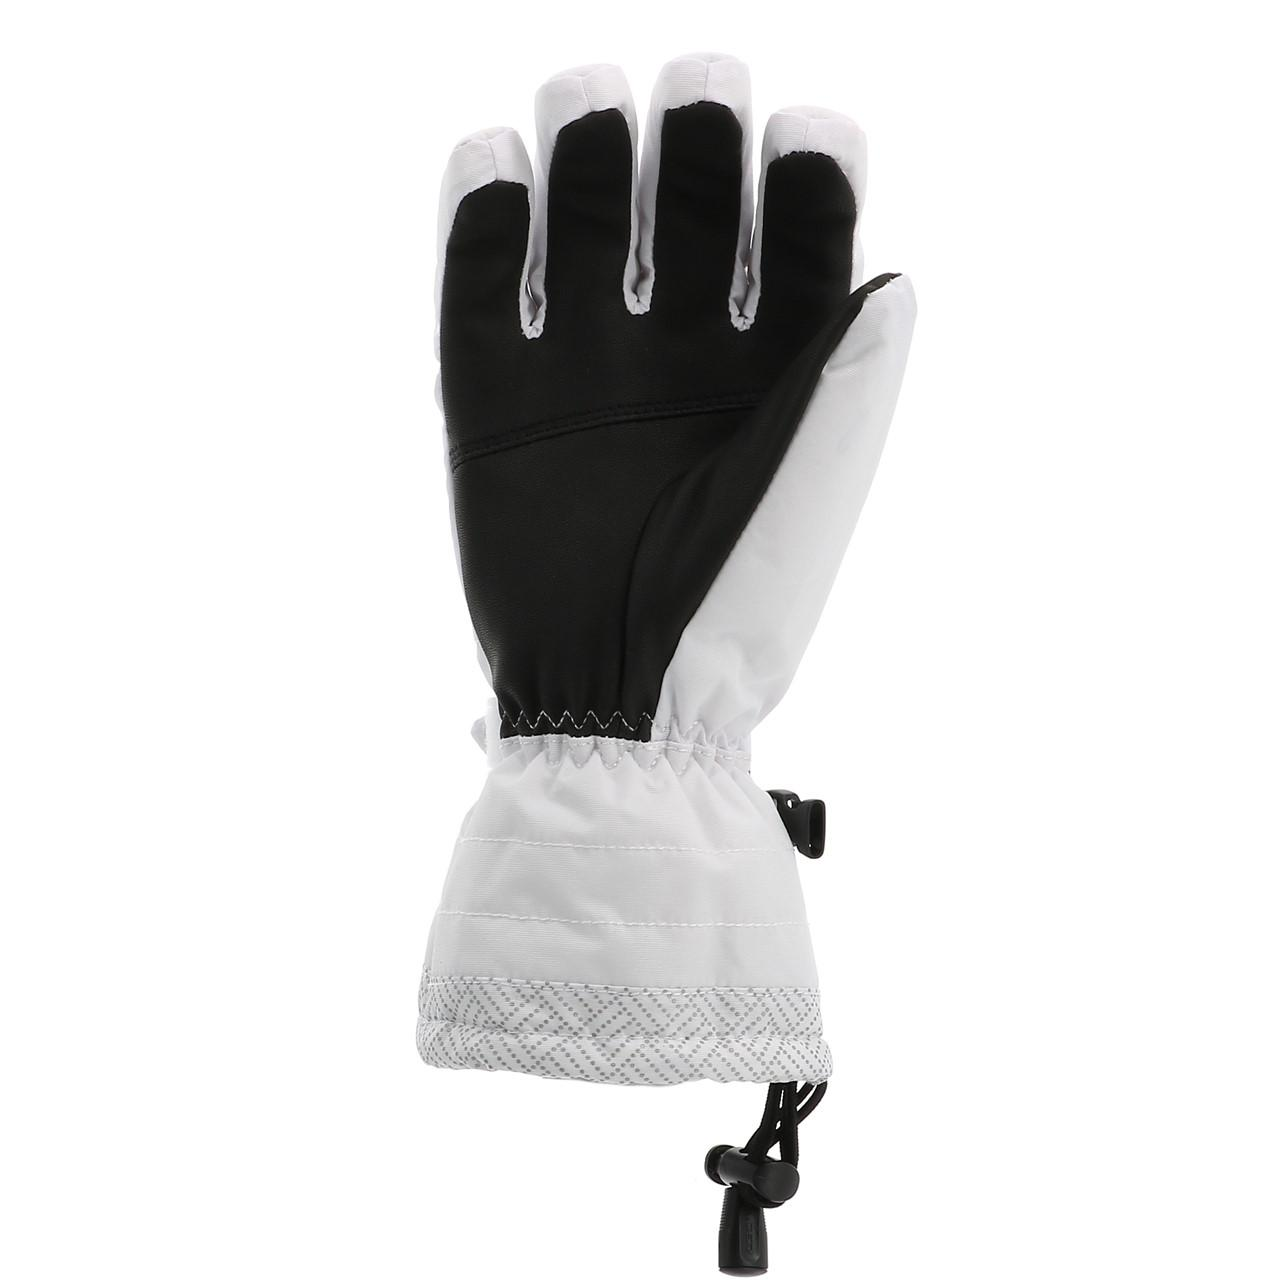 Ski-Gloves-Racer-Aloma-3-White-Gloves-Ski-L-White-15709-New thumbnail 5